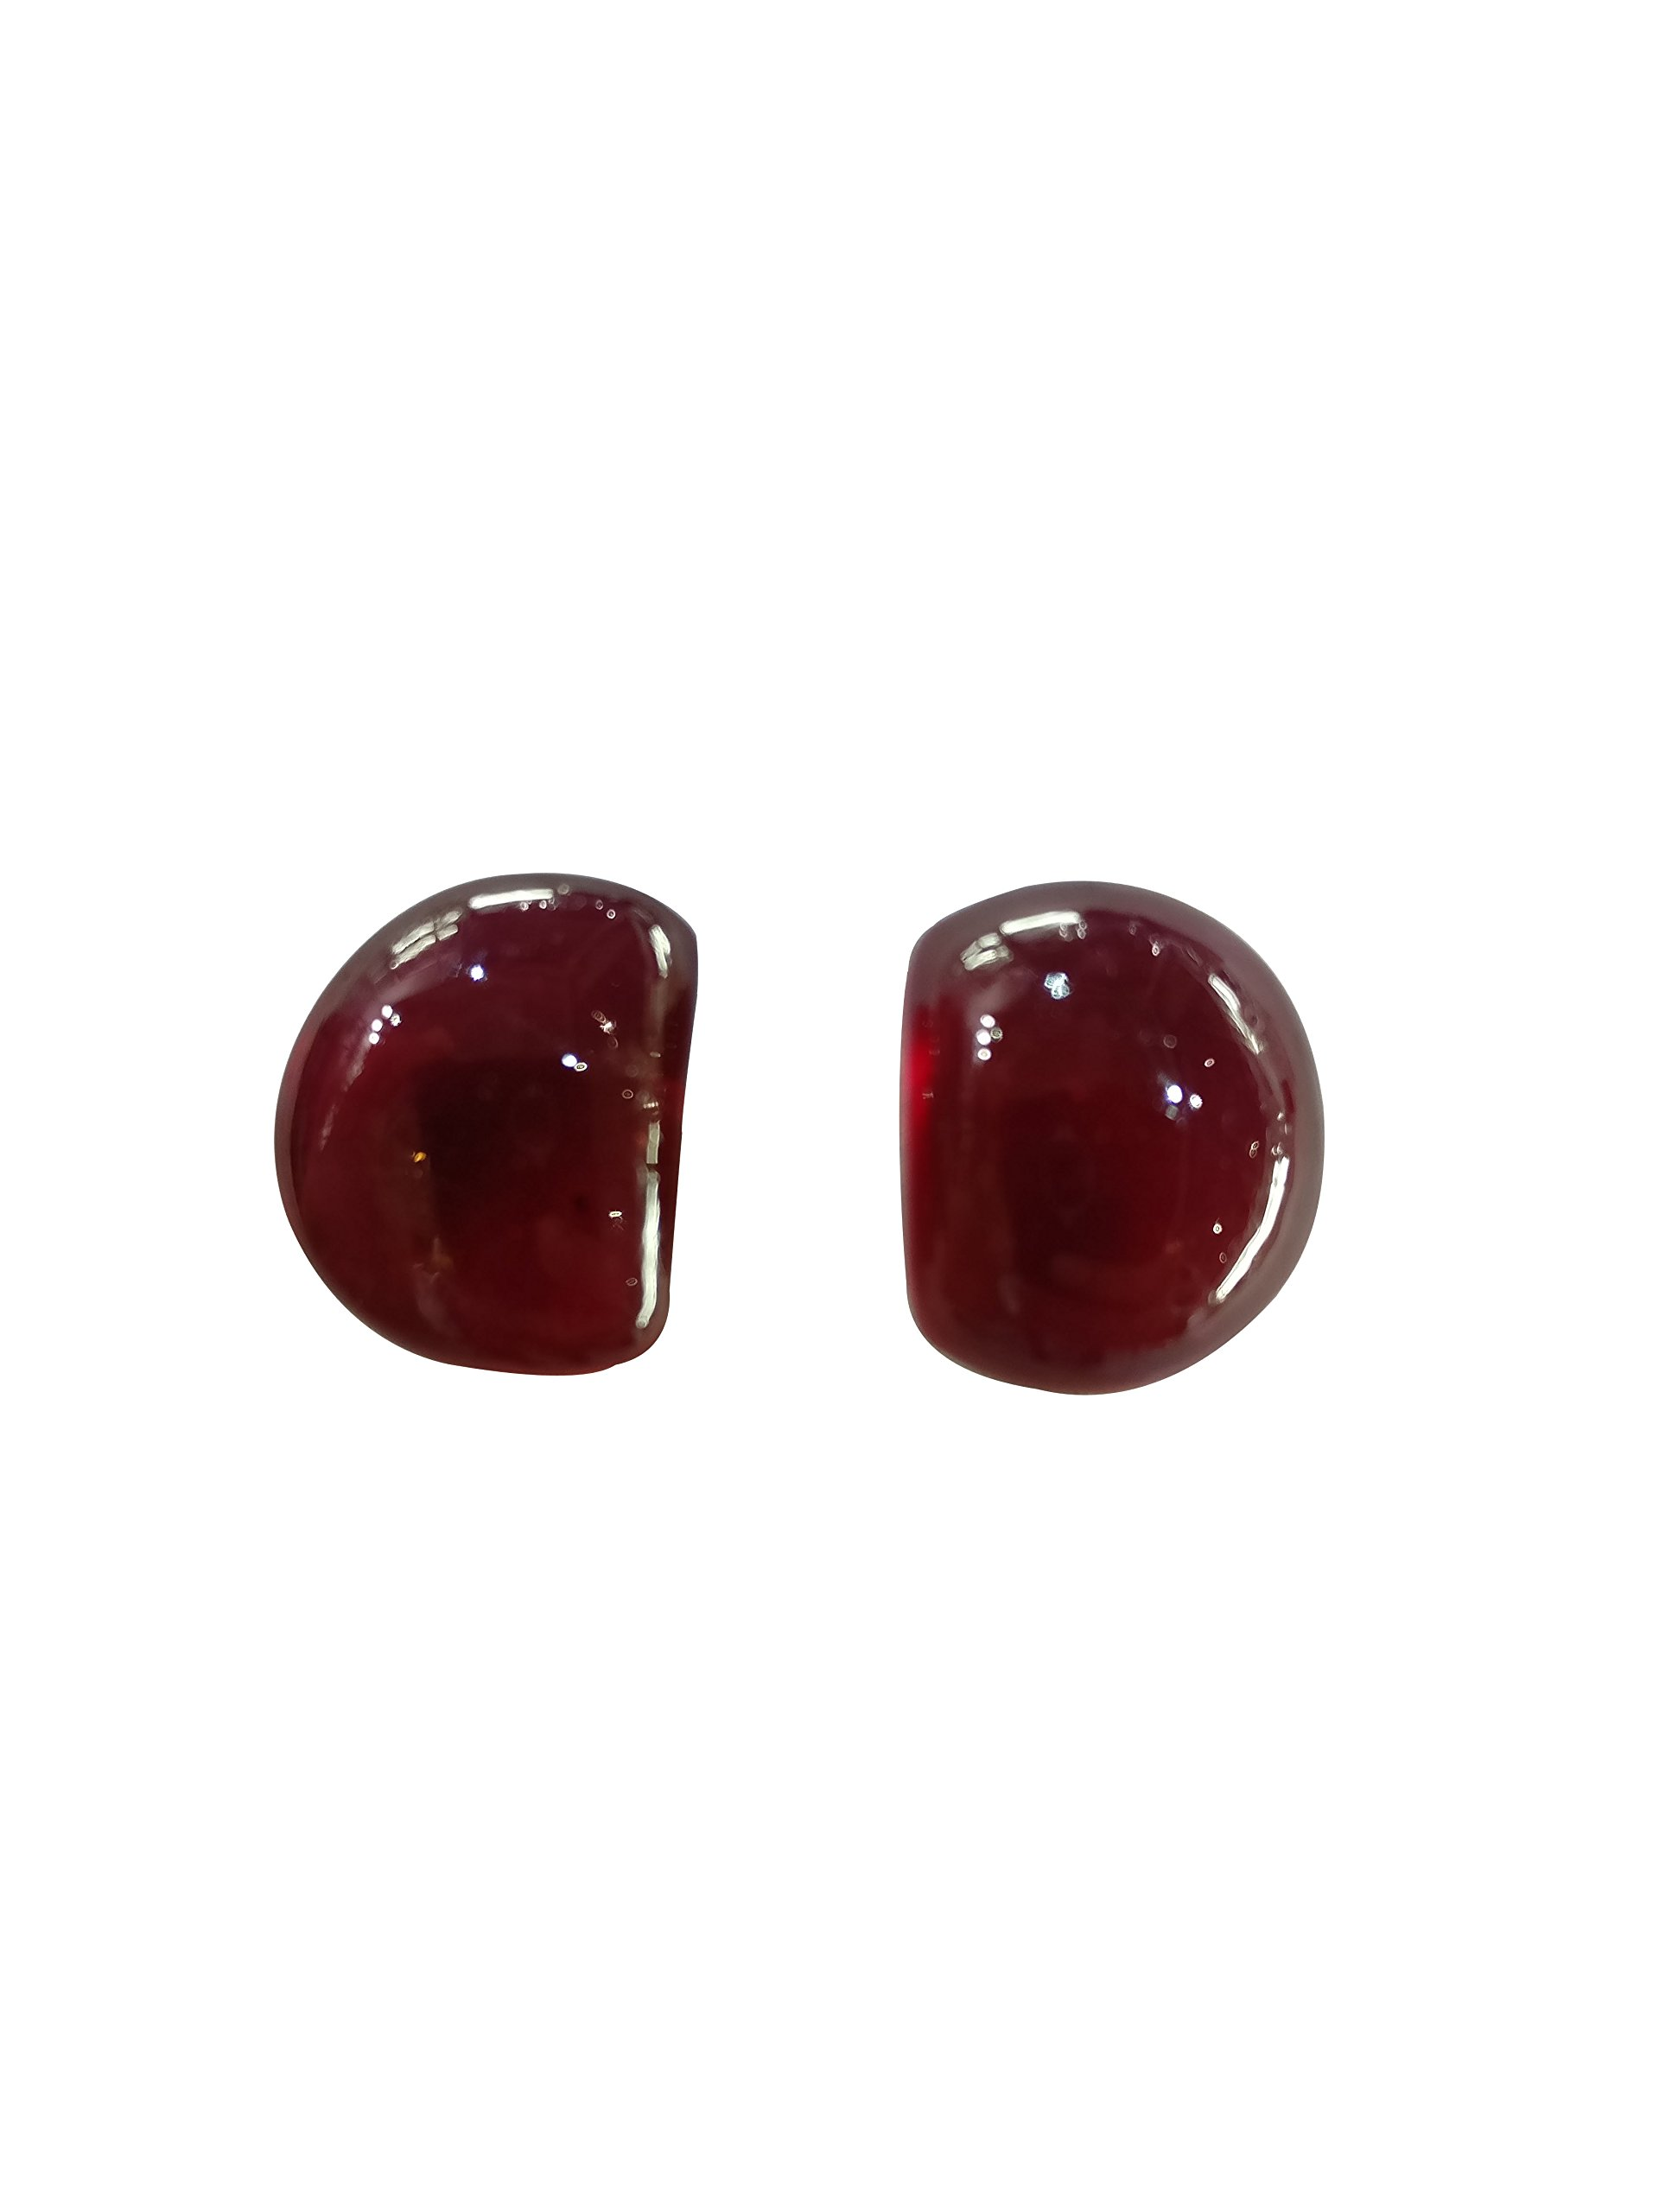 My DT Lifestyle Natural Ruby Glass Filled Gemstone Fancy Shape Cabs Pair Precious Loose Stone